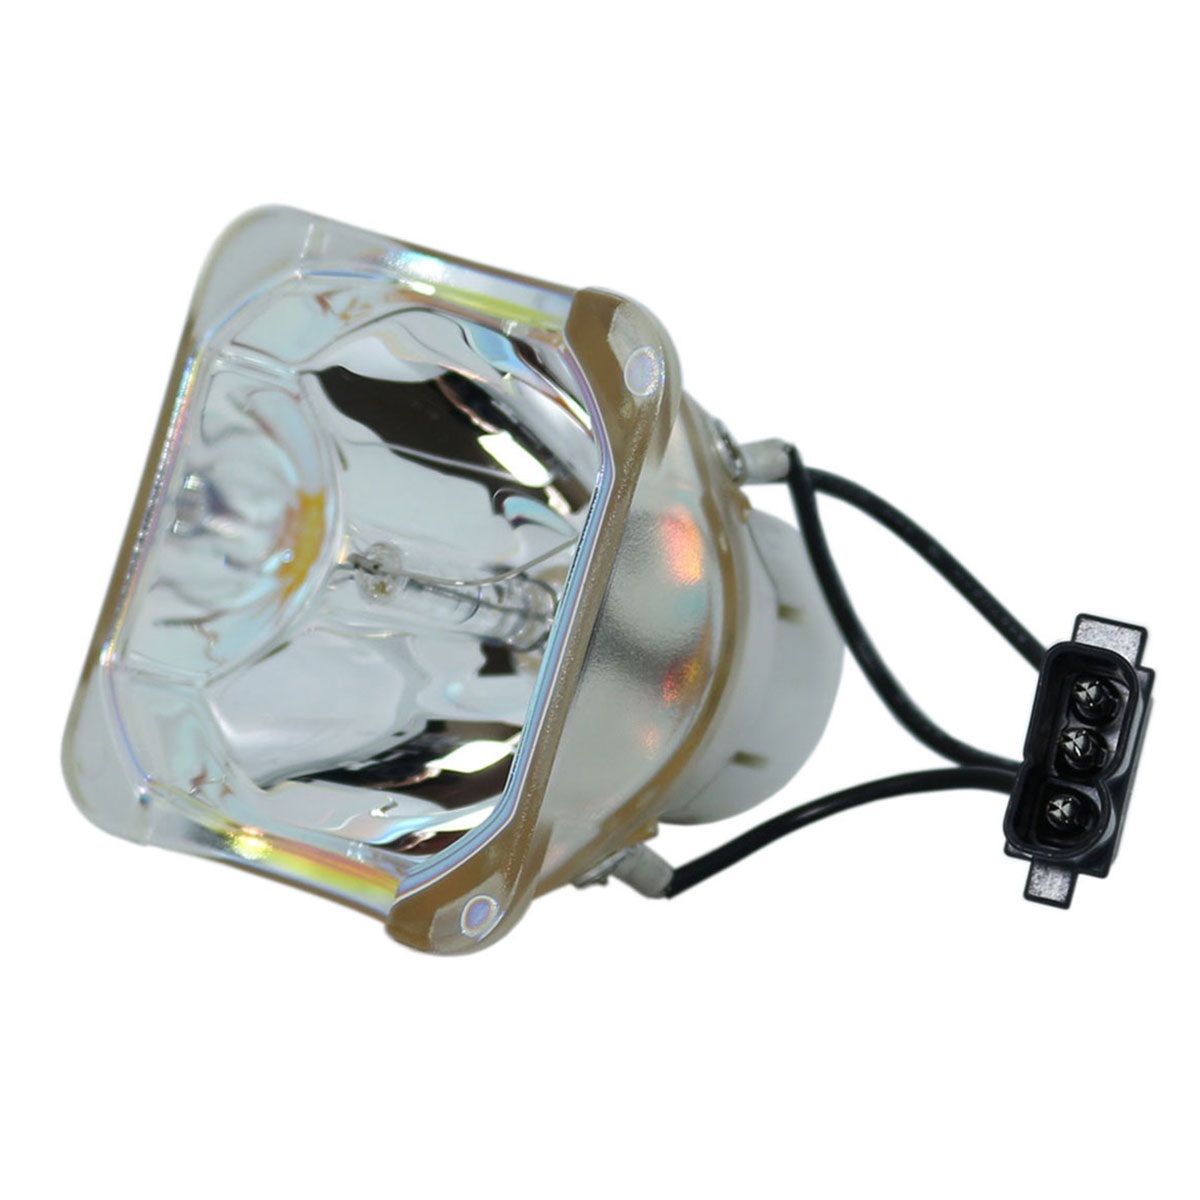 Compatible Bare Bulb POA-LMP111 LMP111 for SANYO PLC-XU101 PLC-WXU30 PLC-WXU3ST PLC-XU105 Projector Lamp Bulb without housing genuine projector bare bulb 610 347 5158 poa lmp137 for sanyo plc wm4500 plc xm100 plc xm100l plc xm5000 plc xm80l projectors